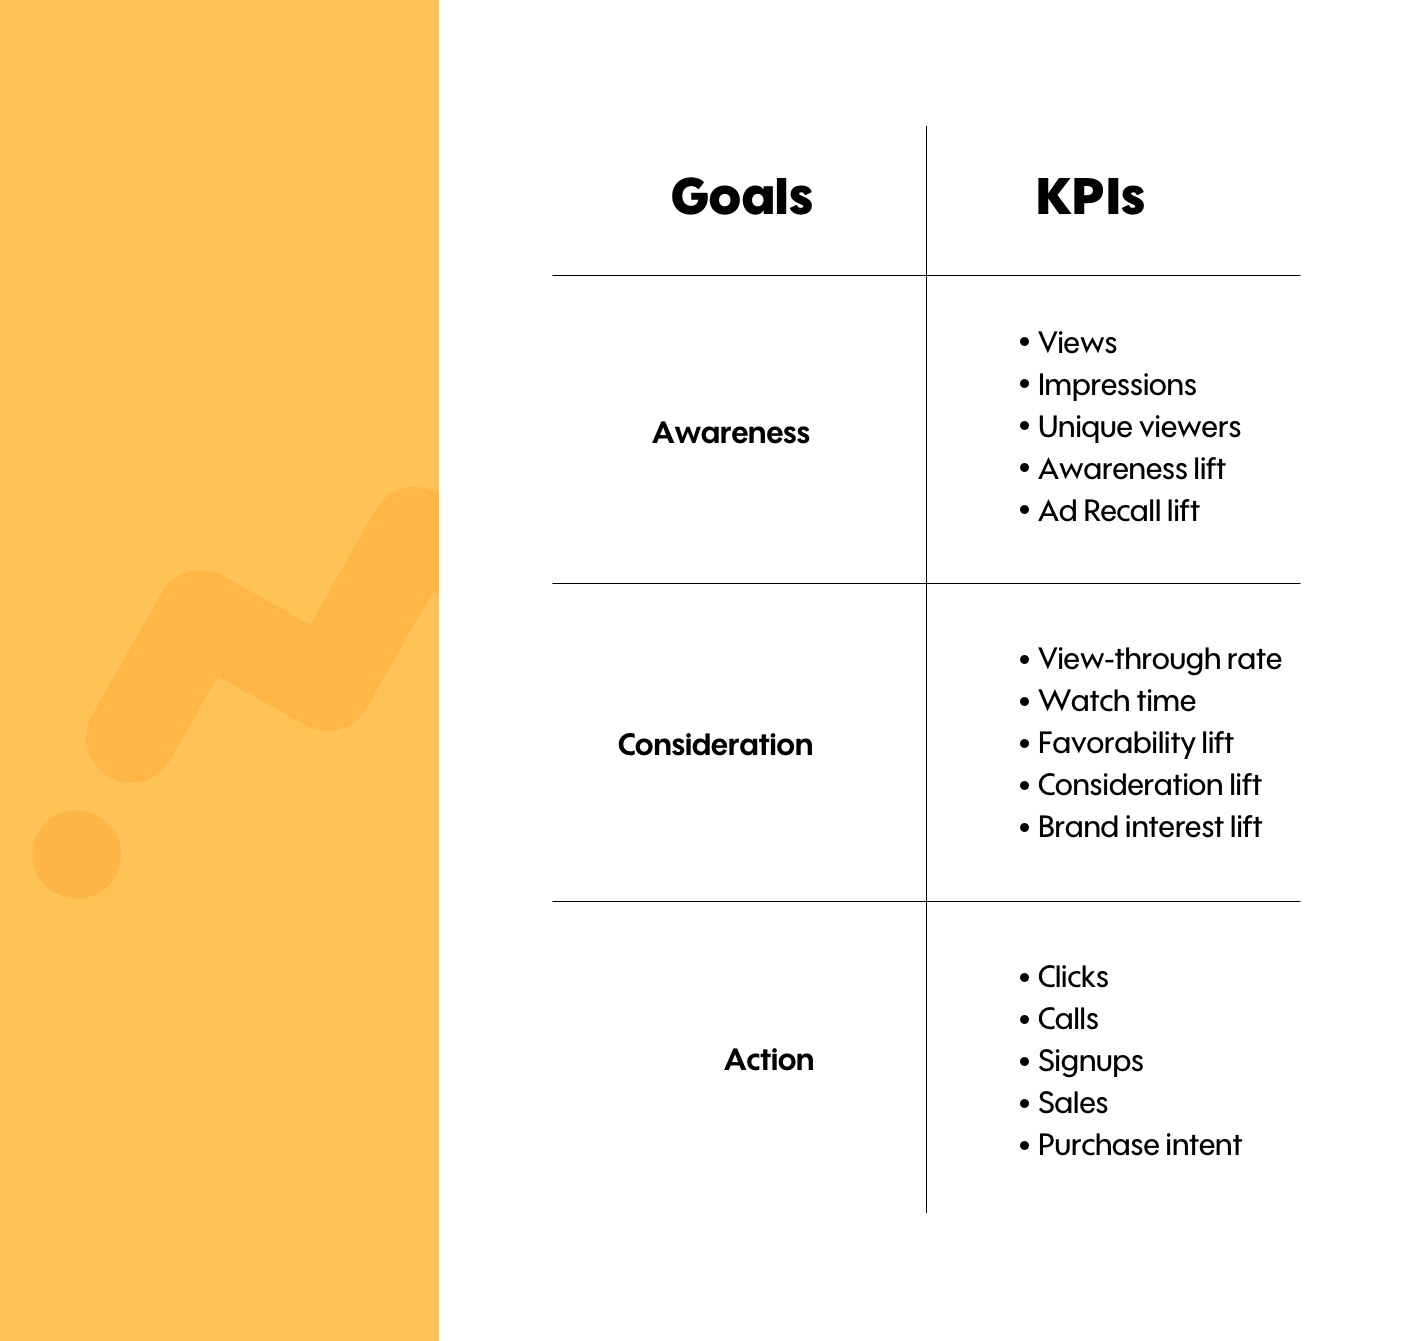 Video Marketing Goals and KPIs